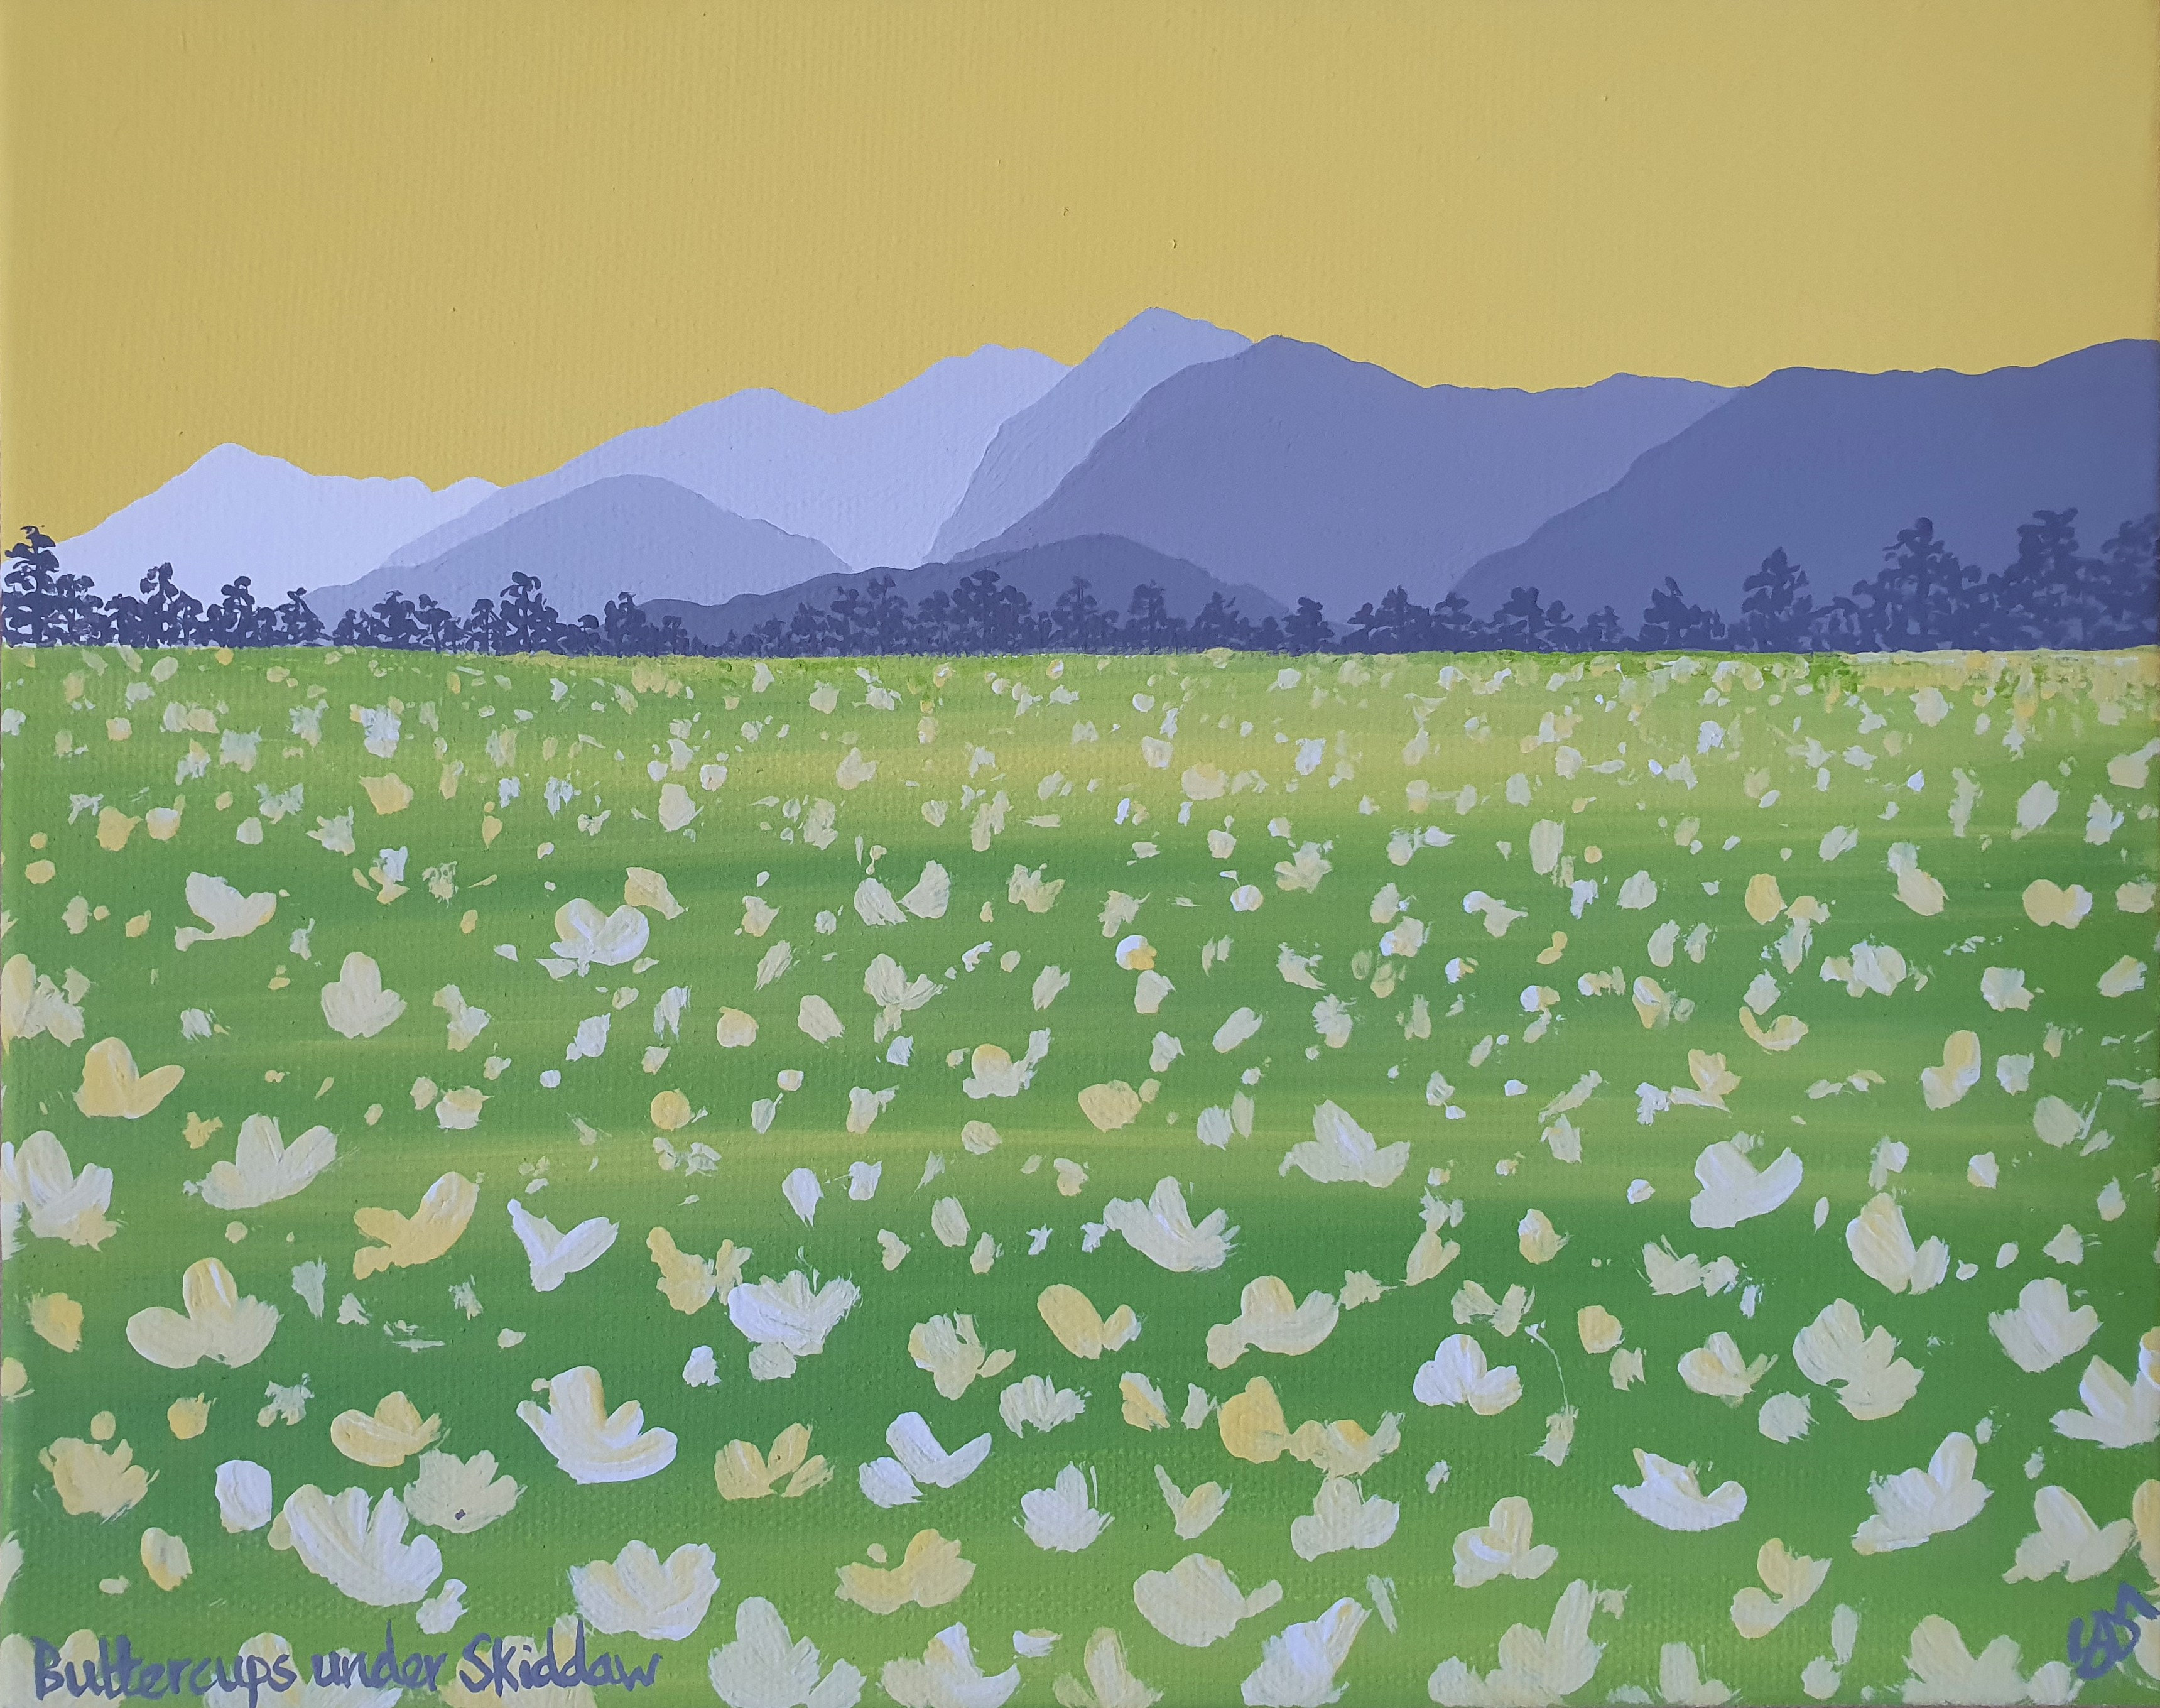 SOLD Buttercups under Skiddaw